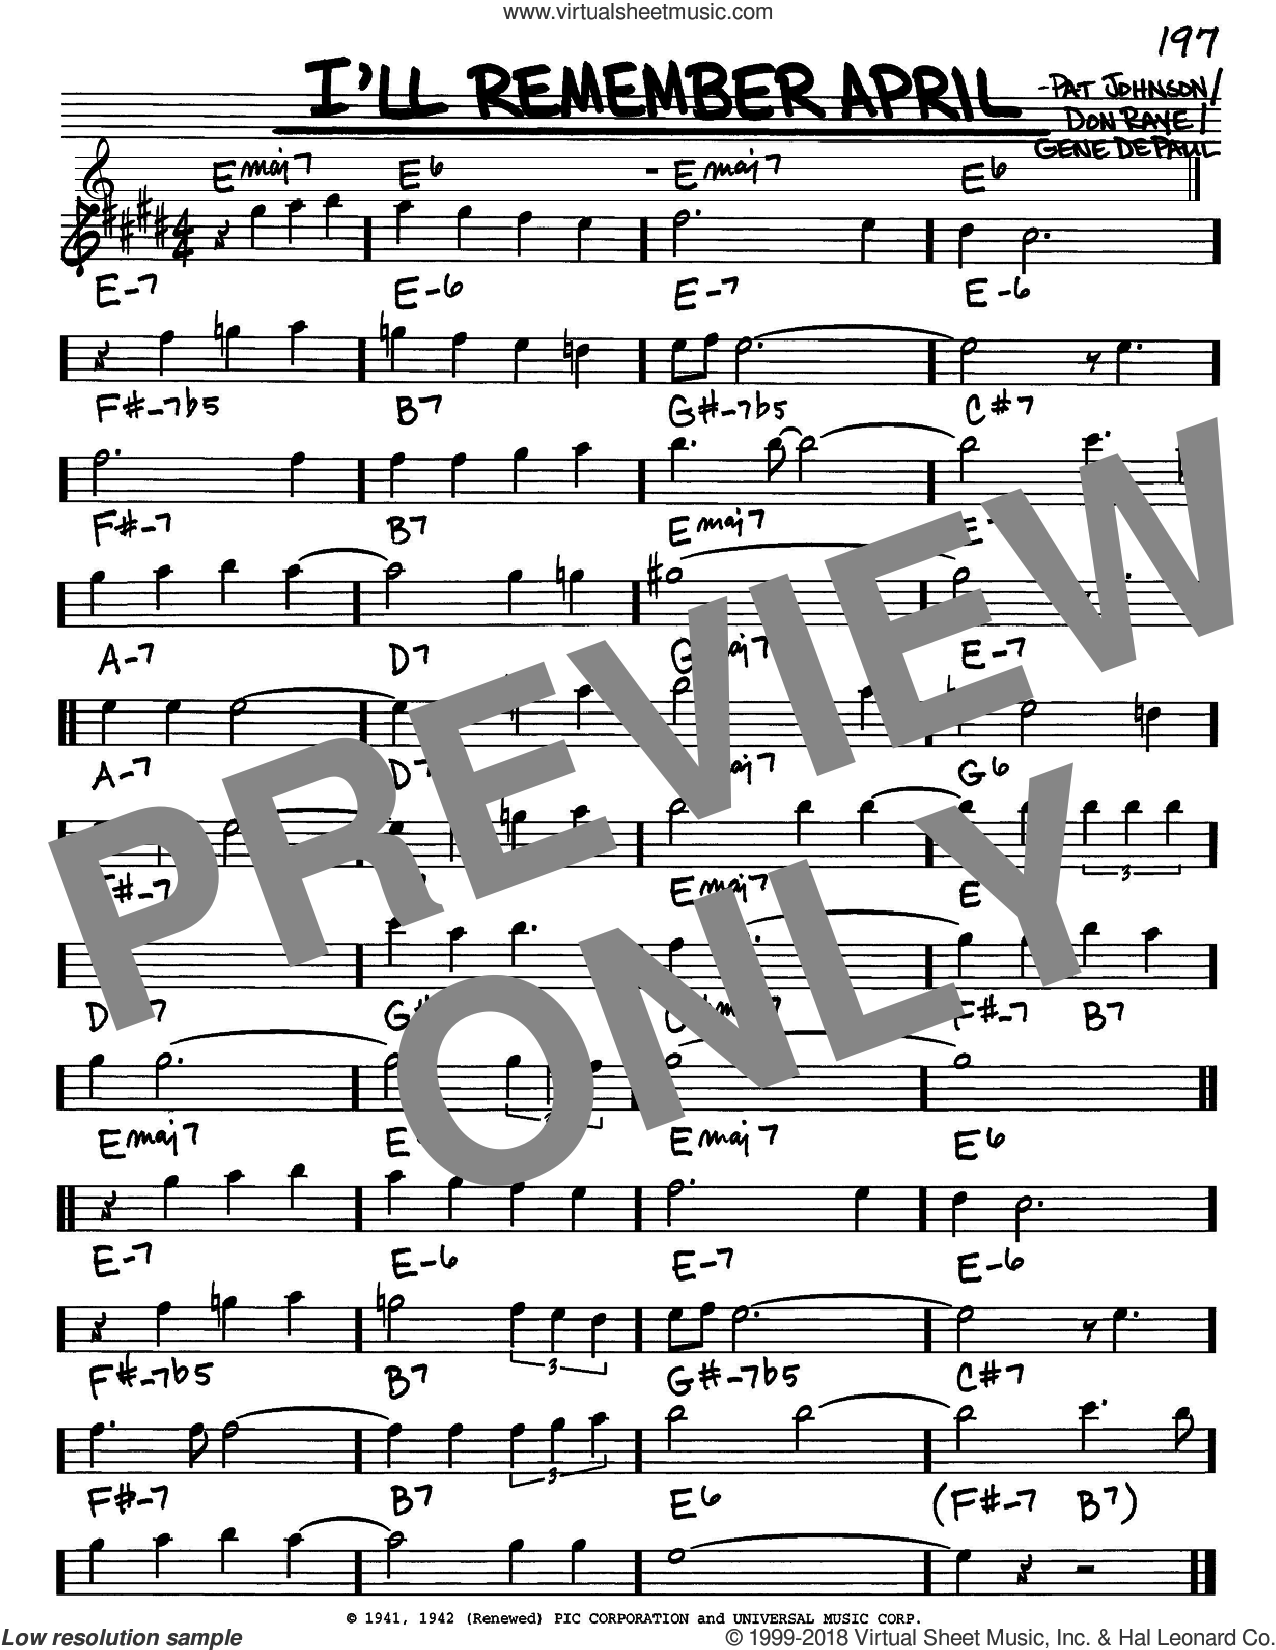 I'll Remember April sheet music for voice and other instruments (Eb) by Pat Johnson, Woody Herman, Don Raye and Gene DePaul